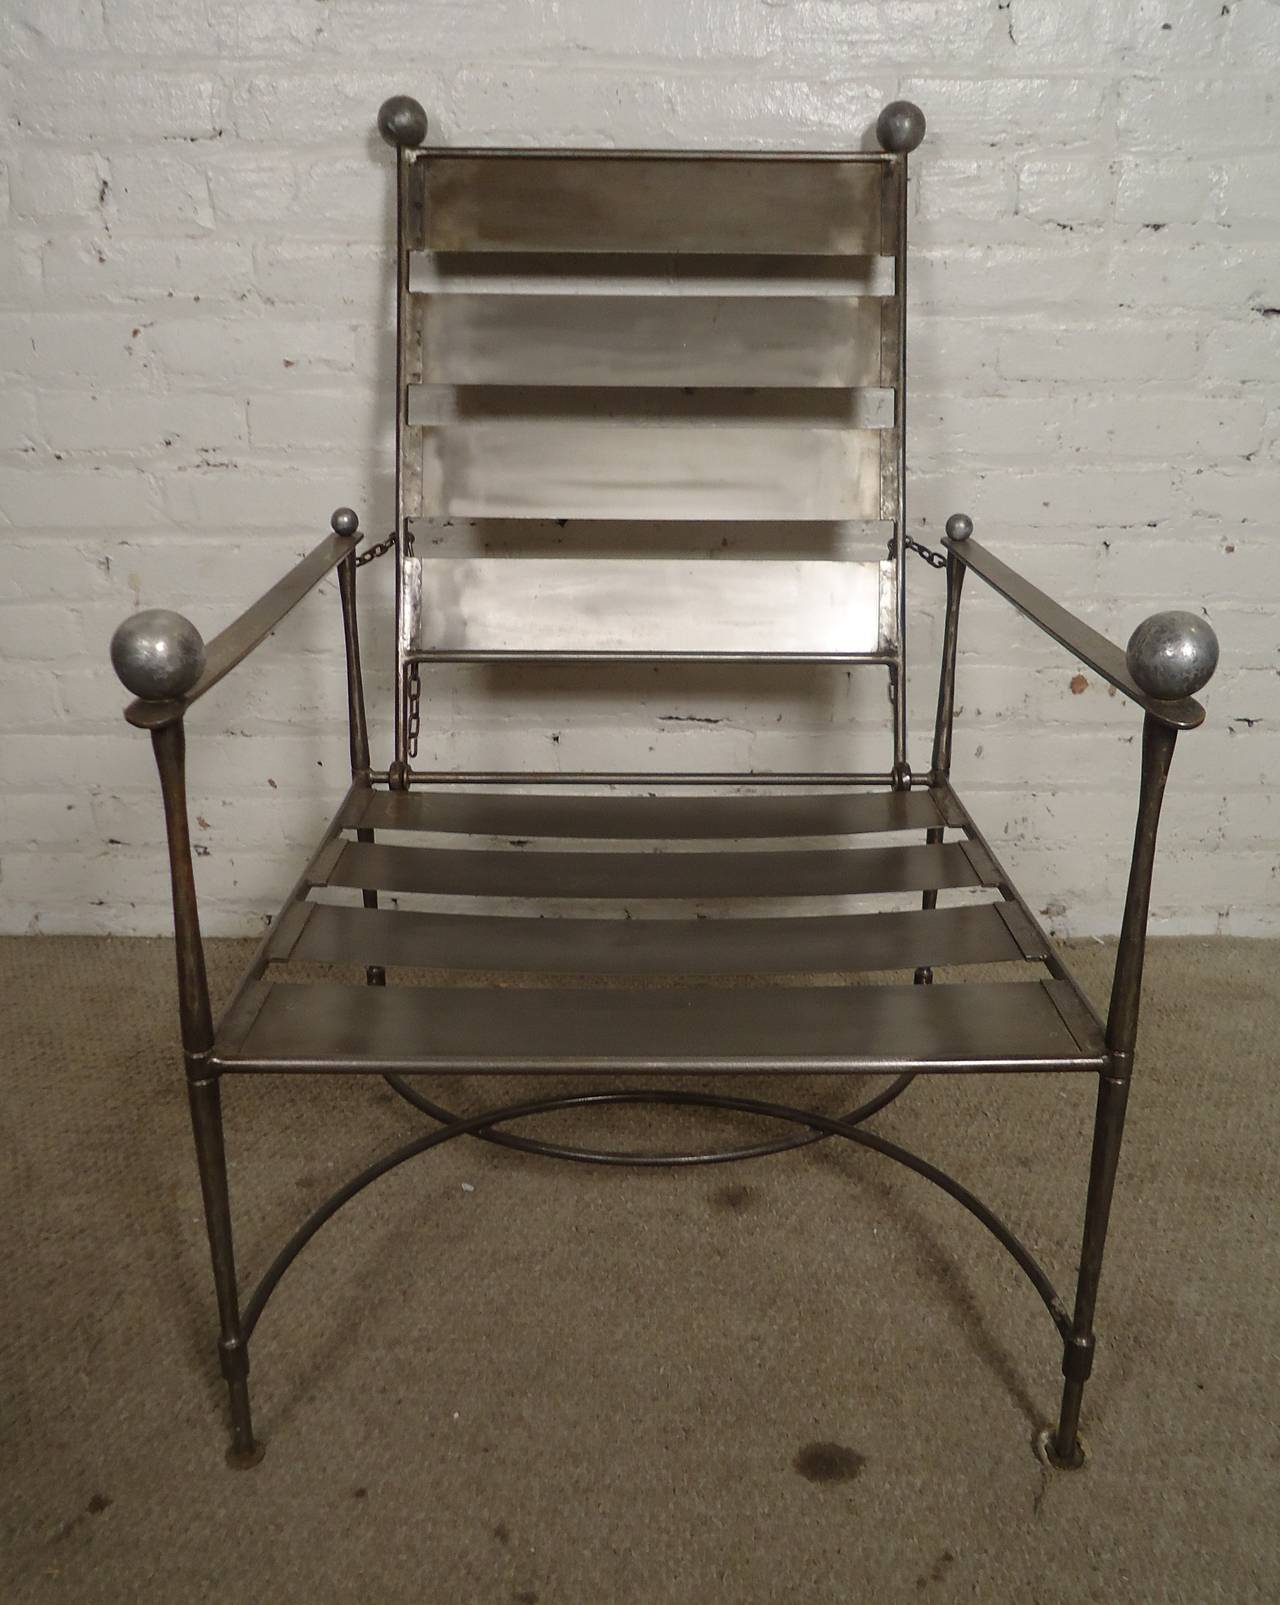 Unusual Pair Of Industrial Slatted Folding Metal Armchairs For Sale At 1stdibs